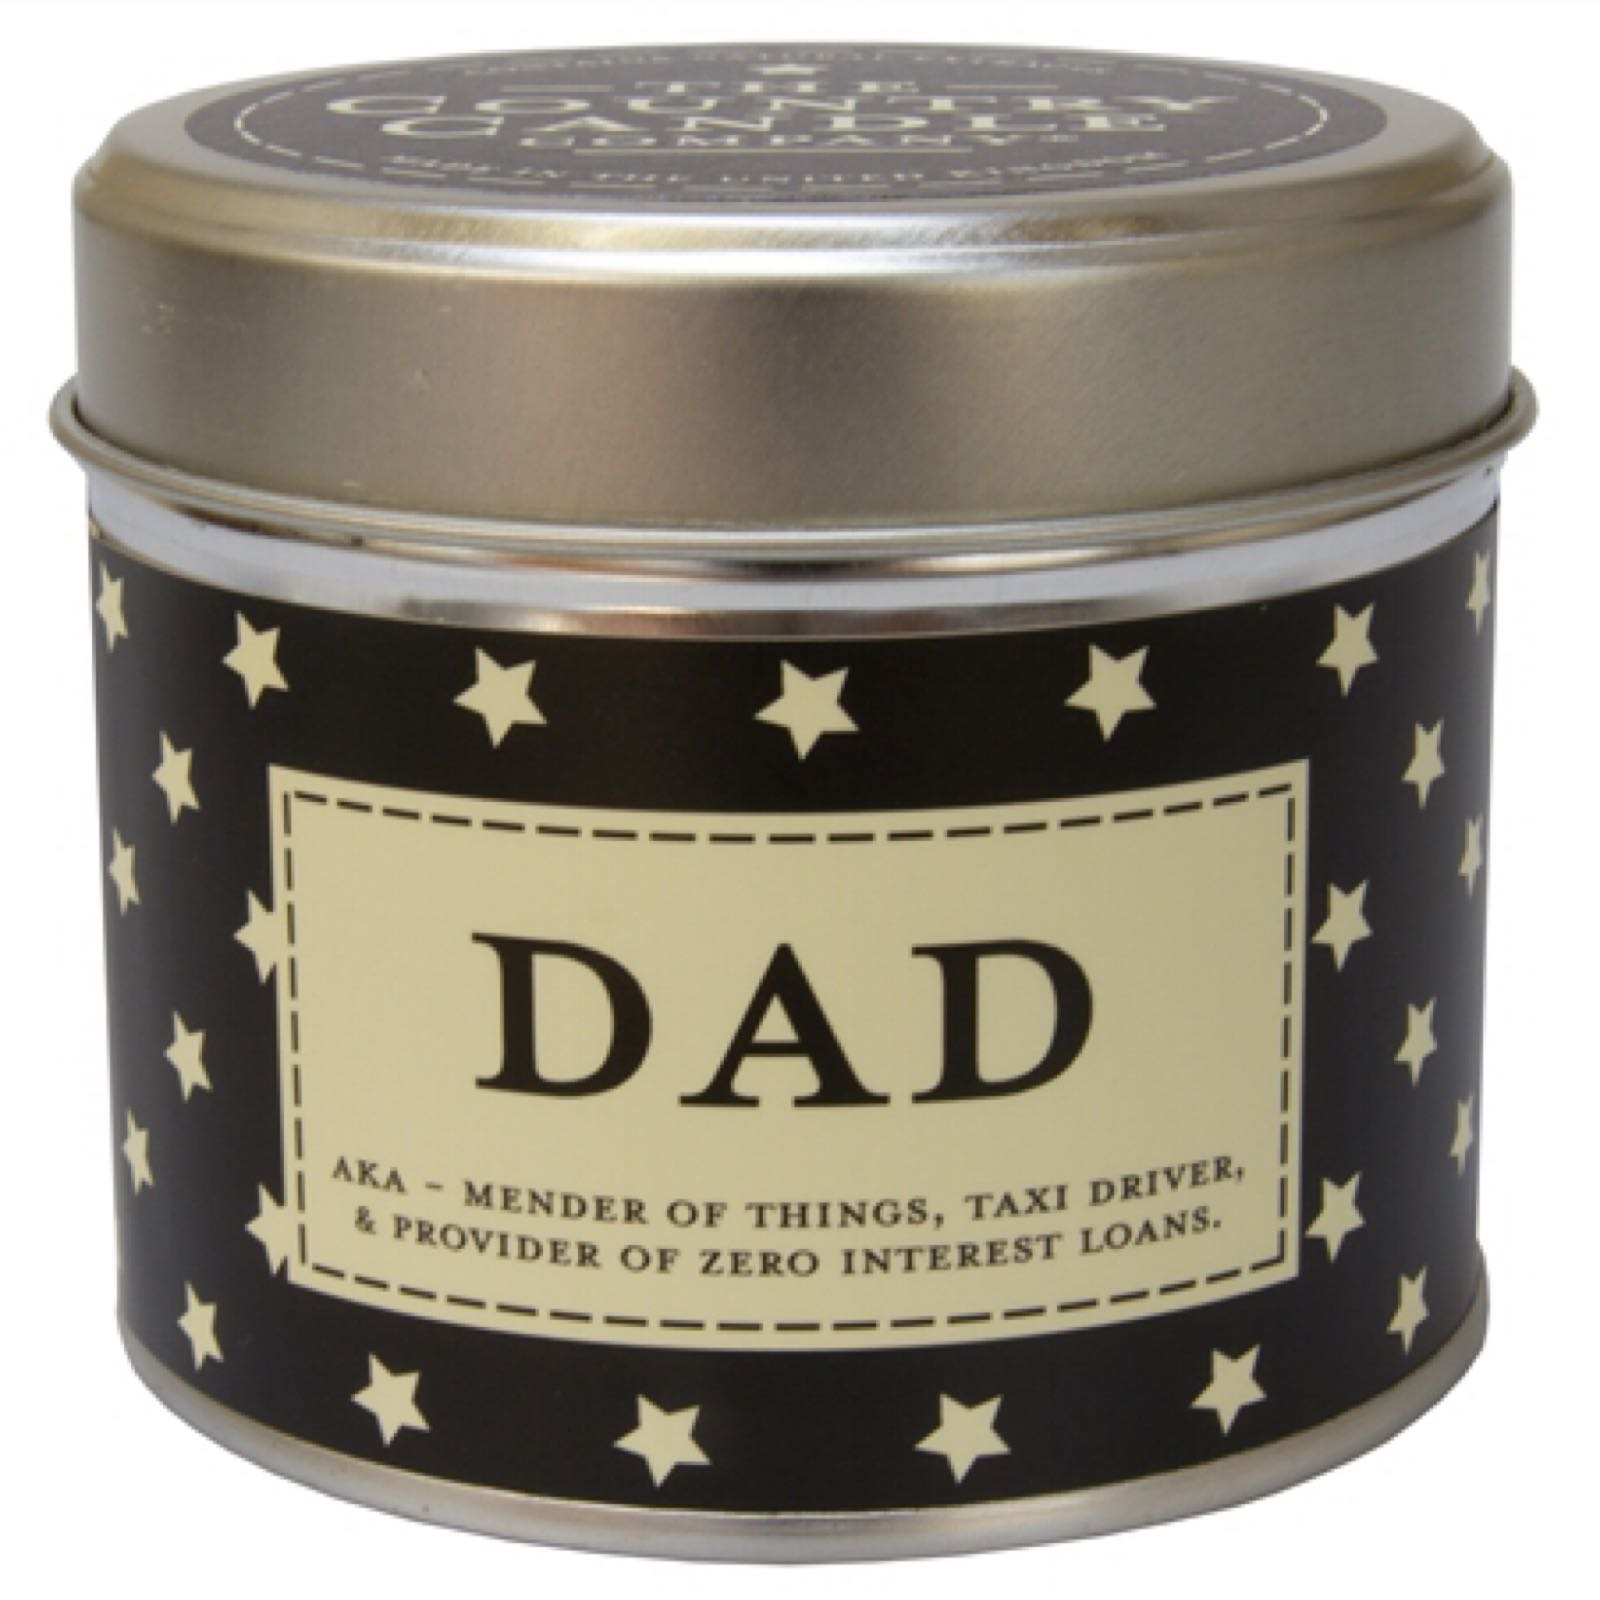 'Dad' Candle in a Tin (Was £8.50)